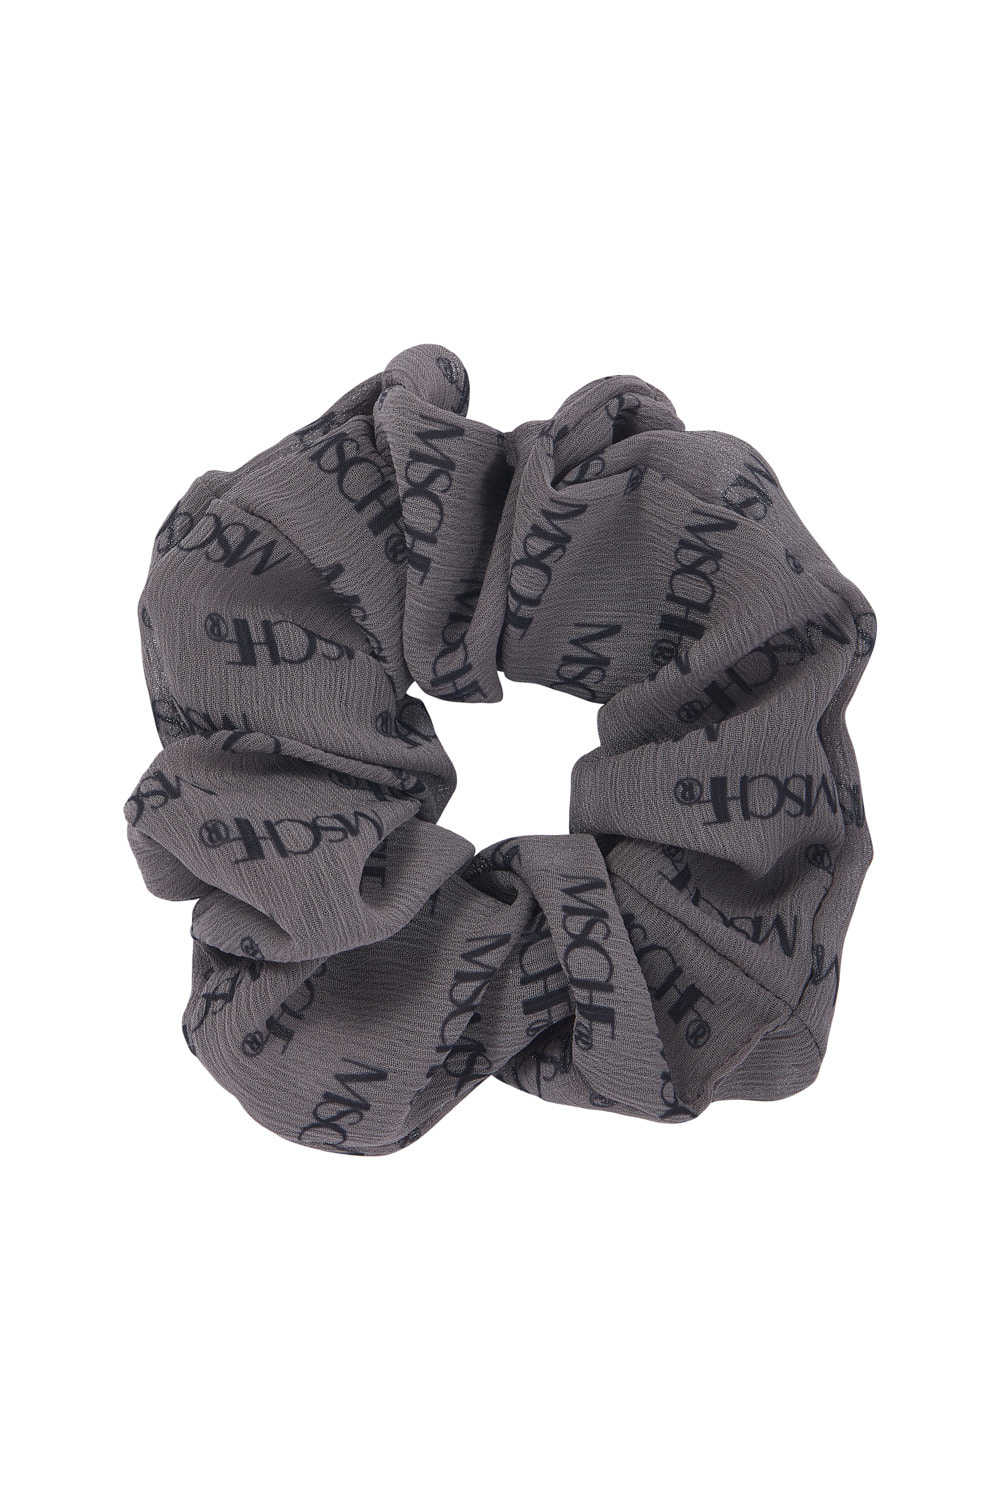 MSCHF REPEAT LOGO SCRUNCHIE_khaki gray